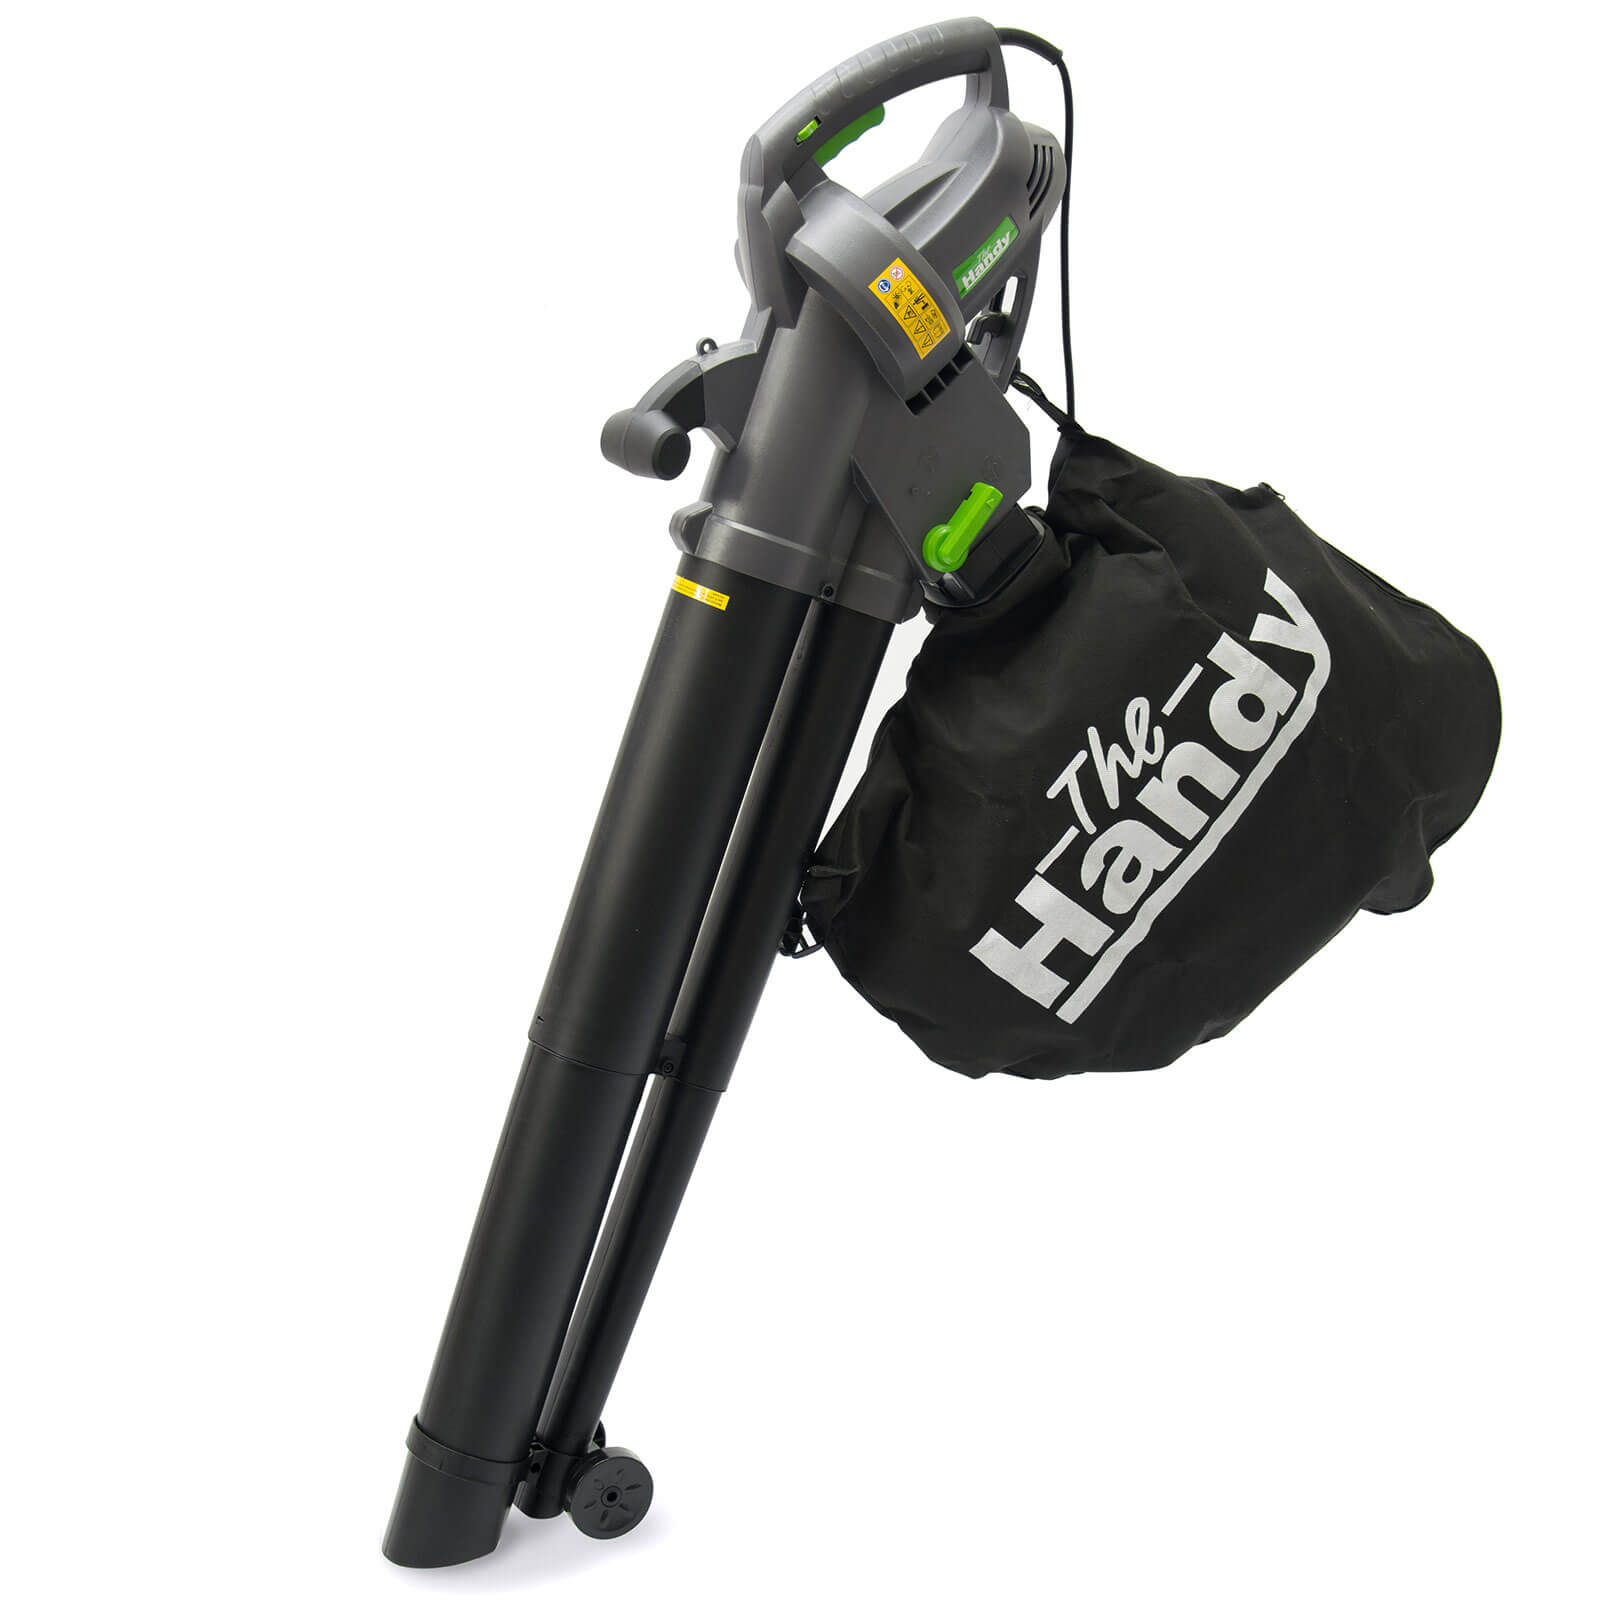 Handy THEV3000 Garden Vacuum and Leaf Blower 240v